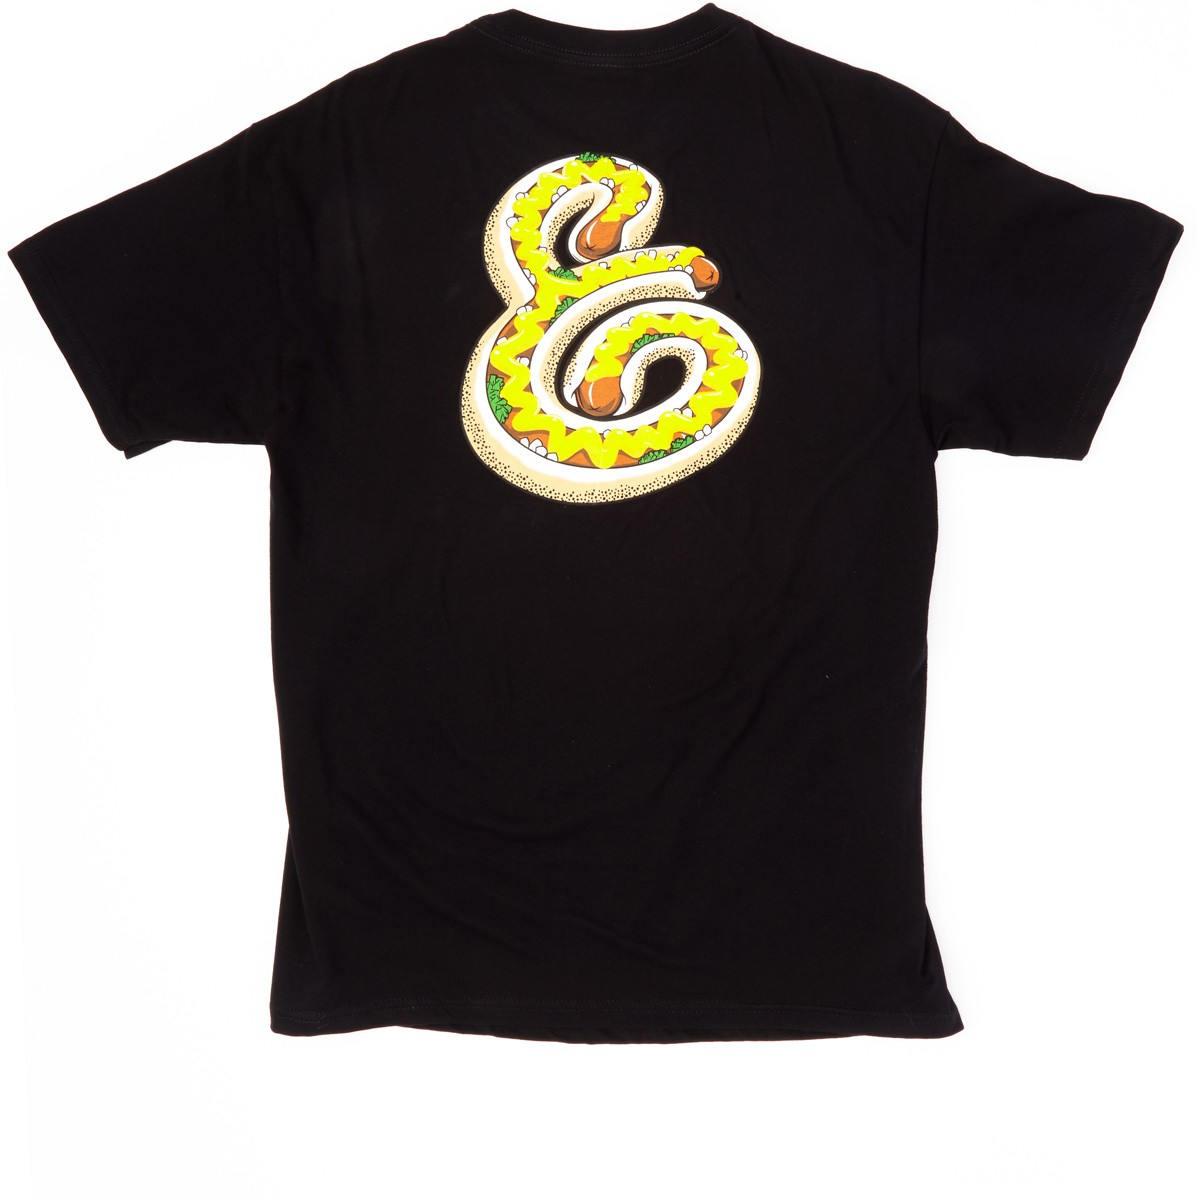 Expedition Ex Hot Dog T-Shirt - Black